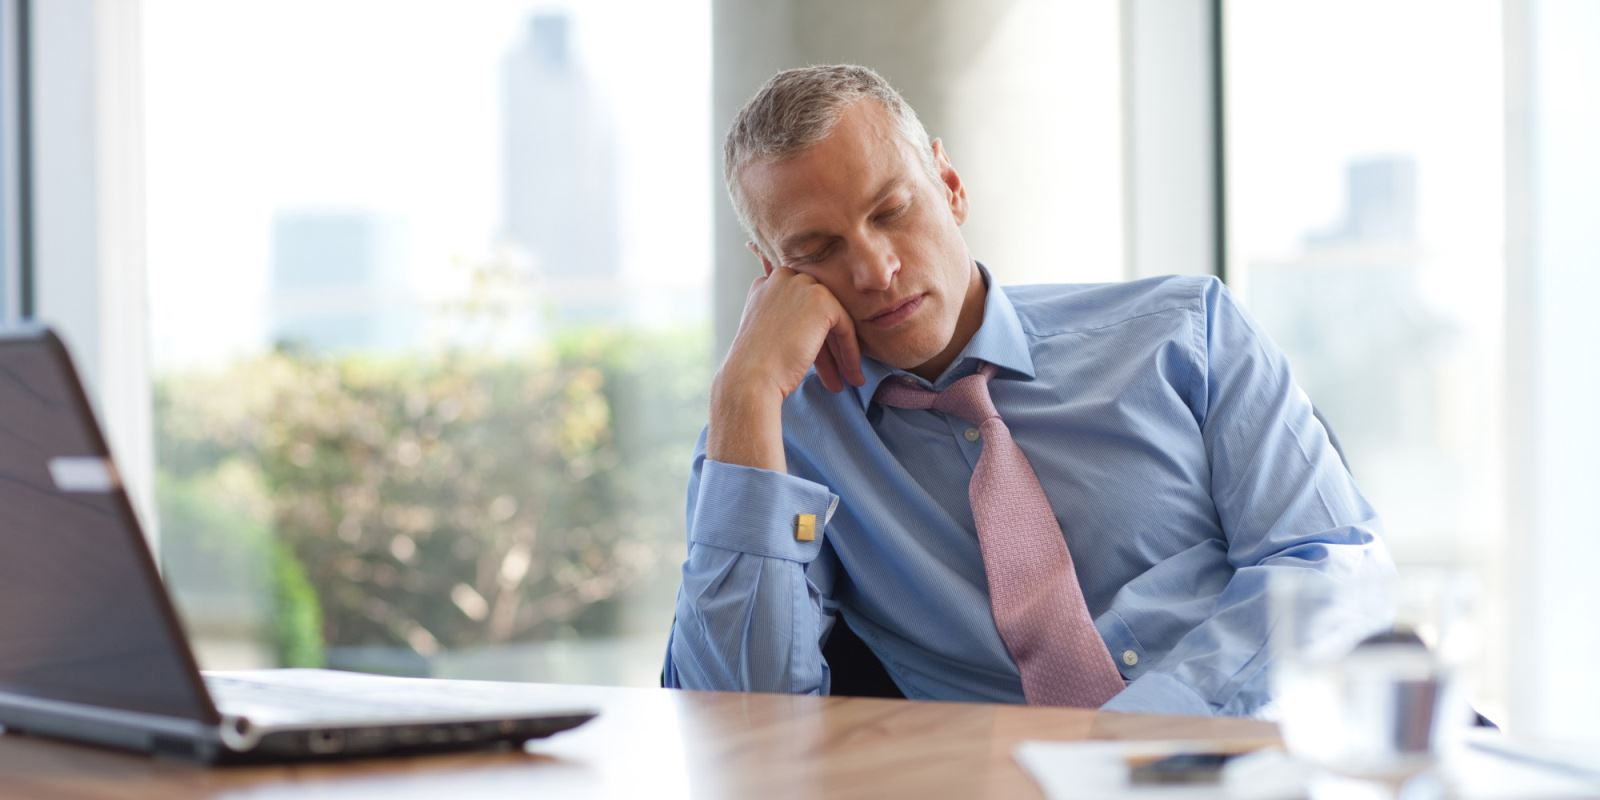 Man in business attire falling asleep at a desk